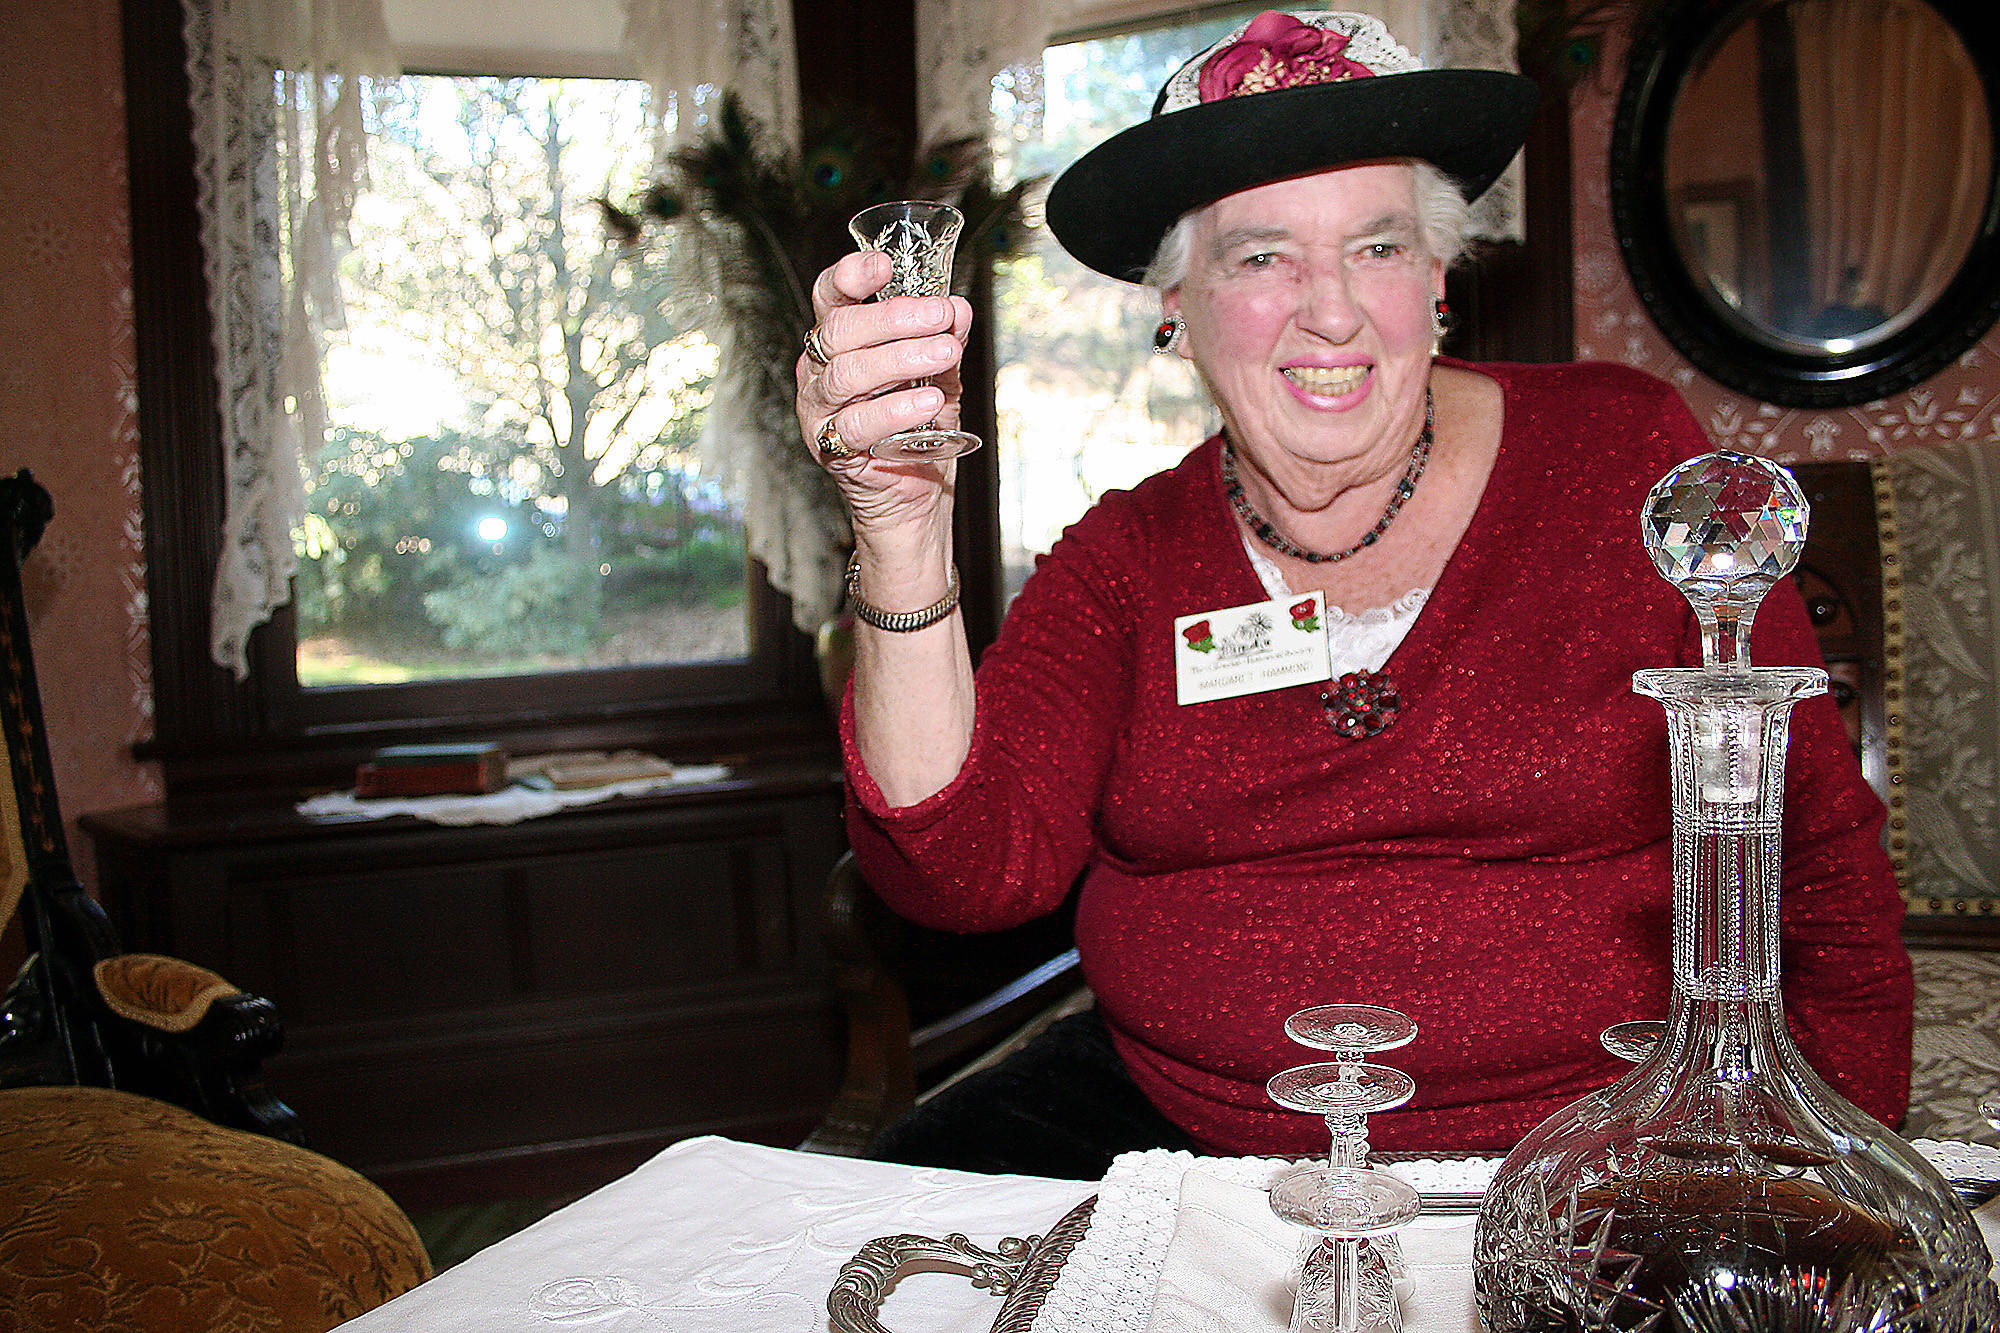 Volunteer greeter and Glendale Historical Society board member Margaret Hammond toasts the new year in the dining room of the Doctors House Museum in Brand Park.